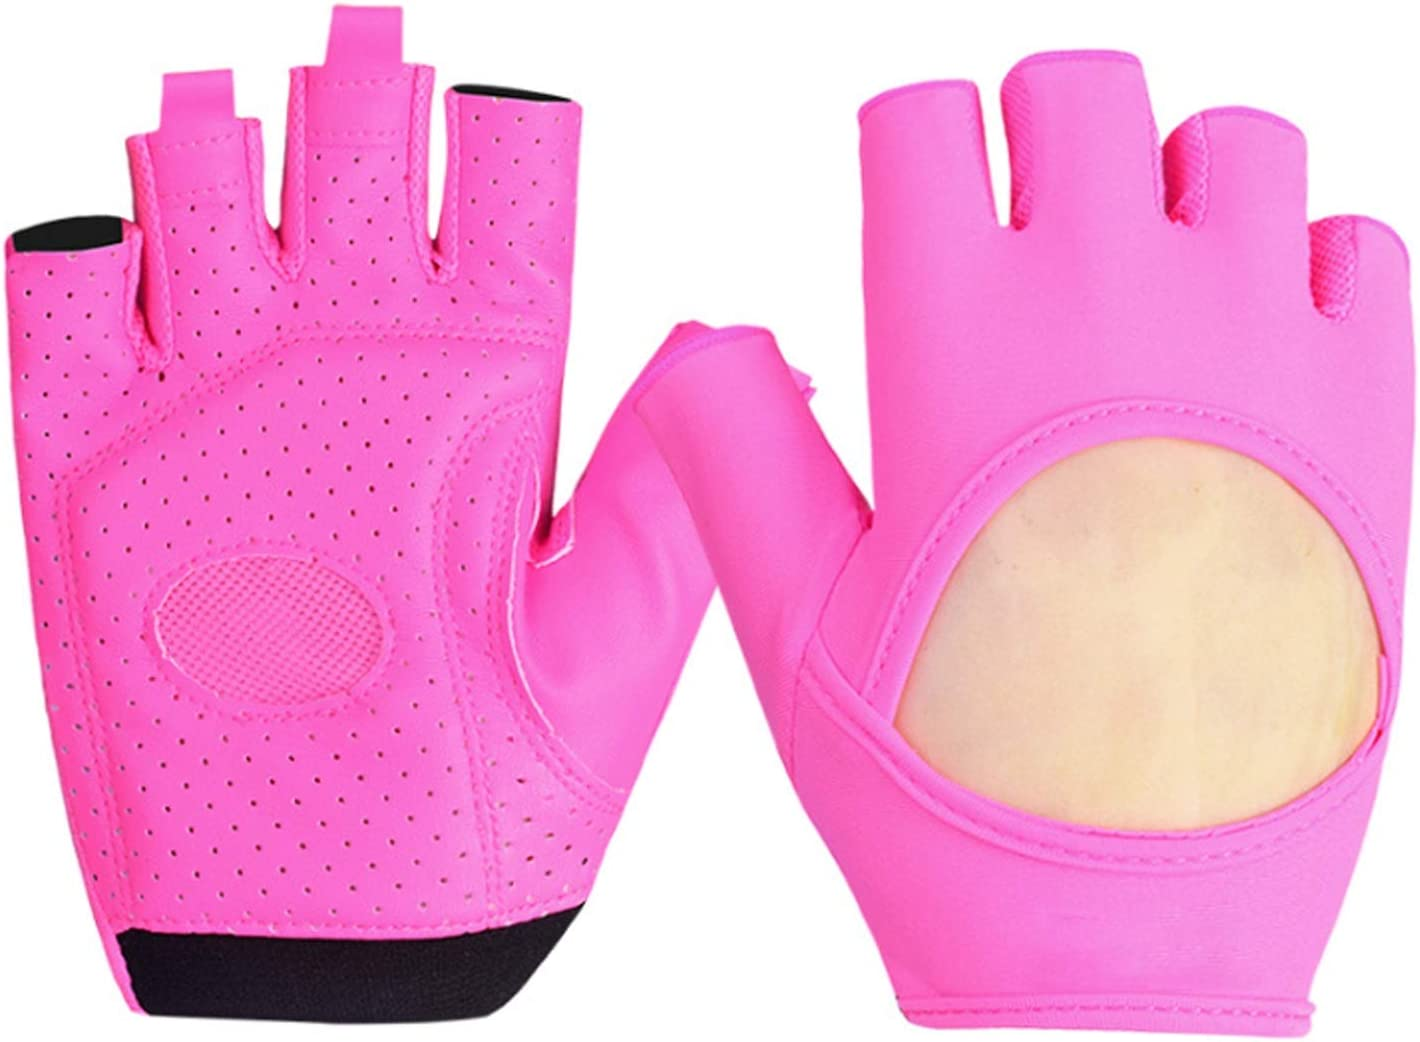 HHF Mitts Gloves Weightlifting Dumbbell Exercise Fitness Recommendation Yoga Max 57% OFF